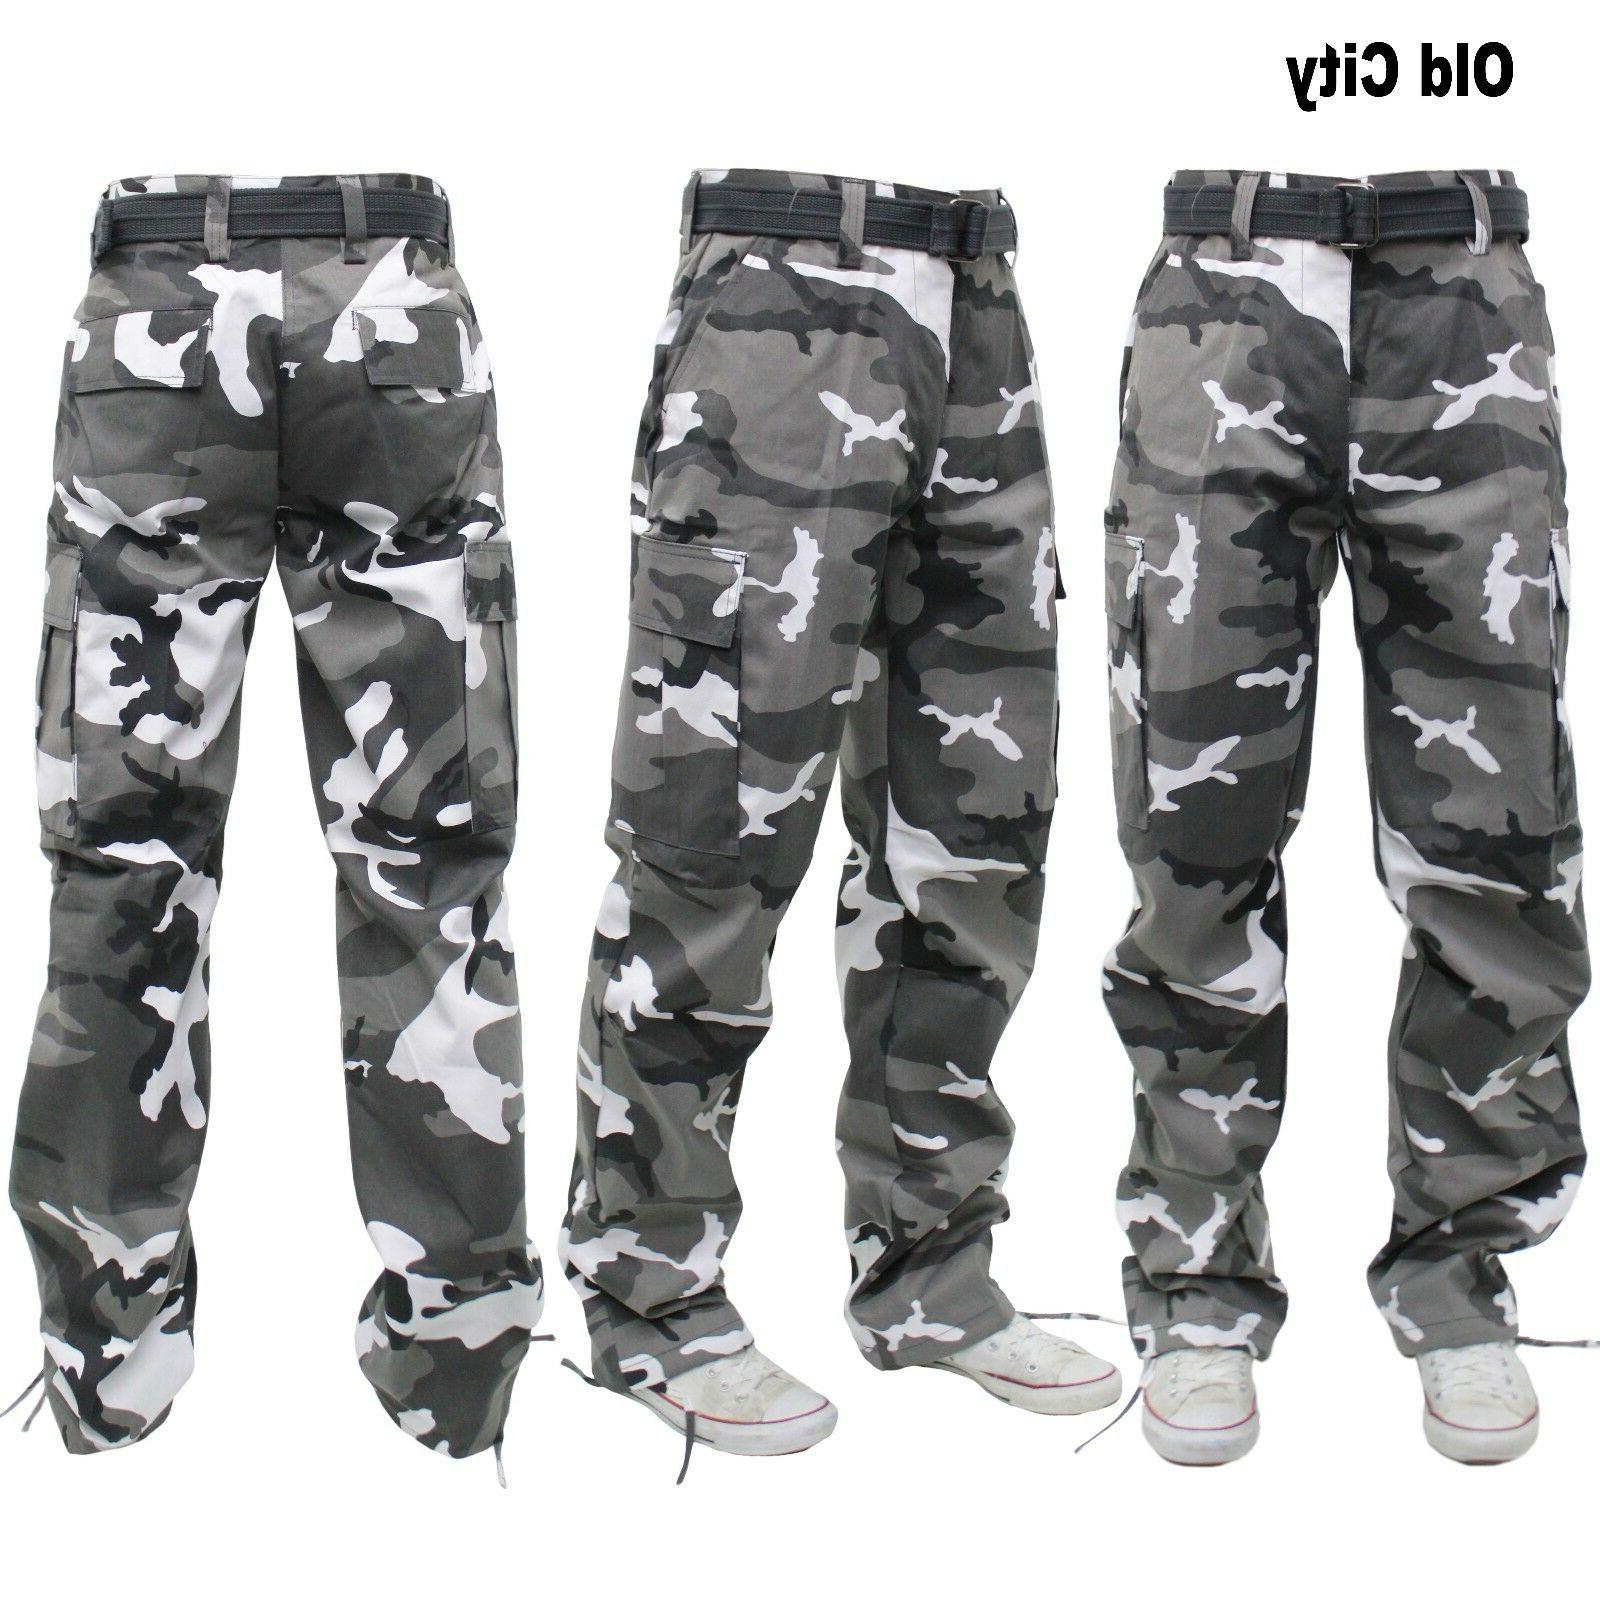 BIG AND MILITARY CAMOUFLAGE CARGO COMBAT PANTS